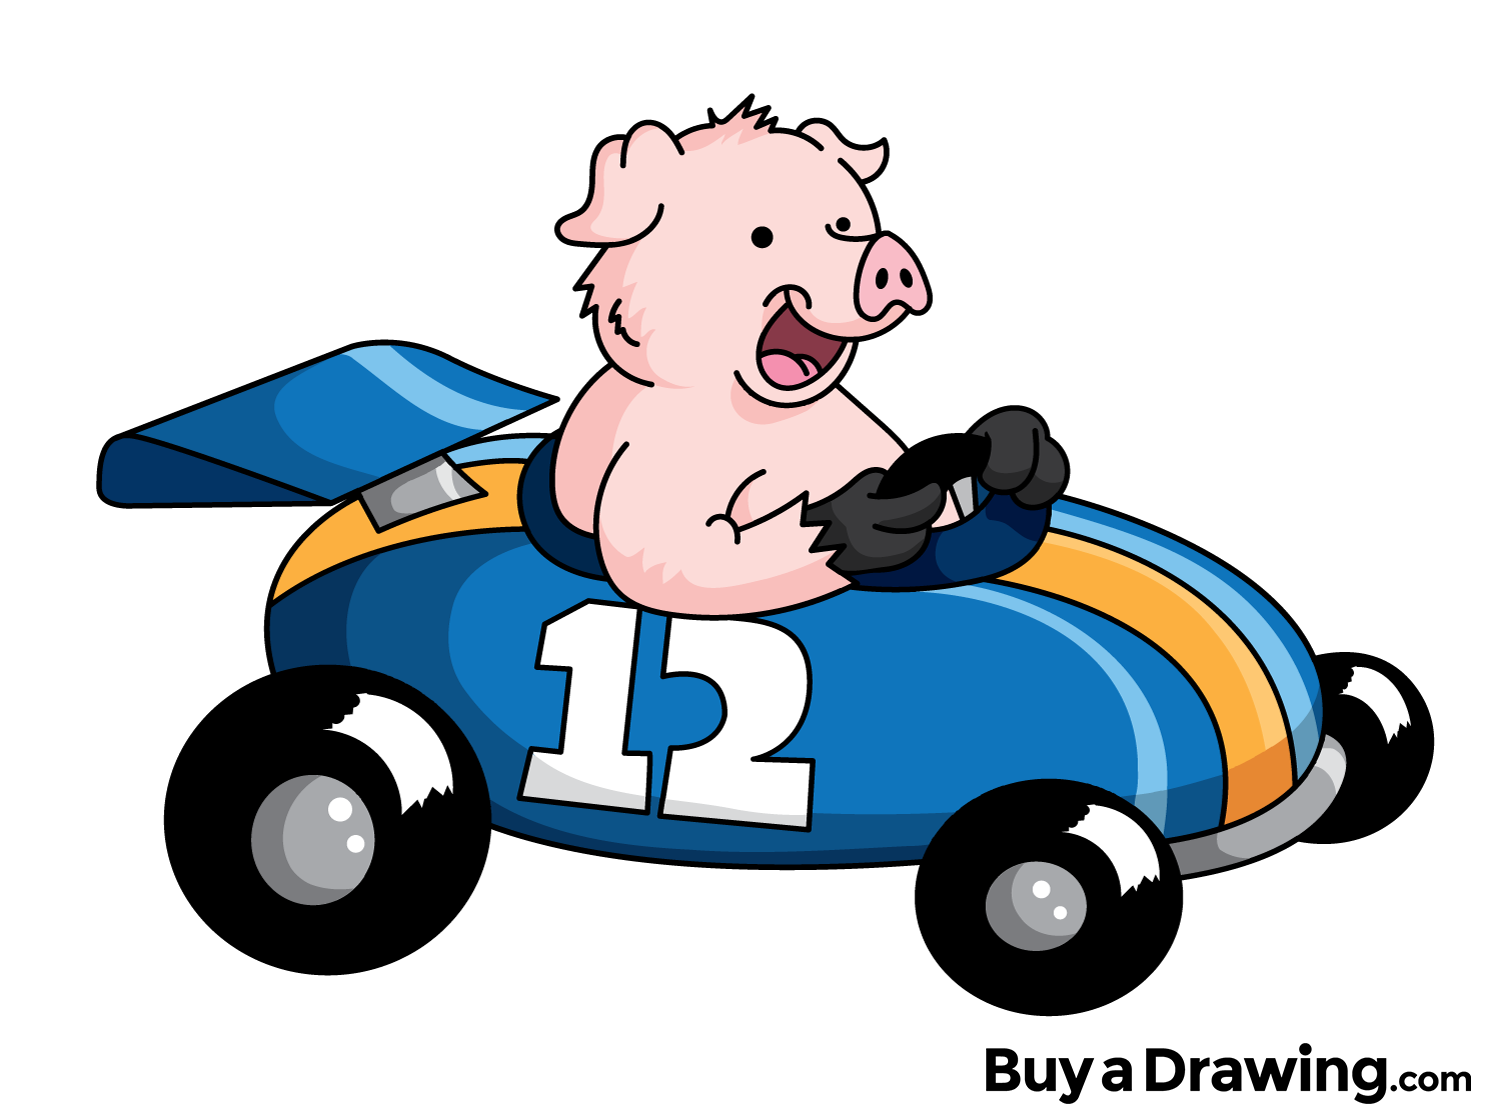 Race clipart family game. A cartoon pig in